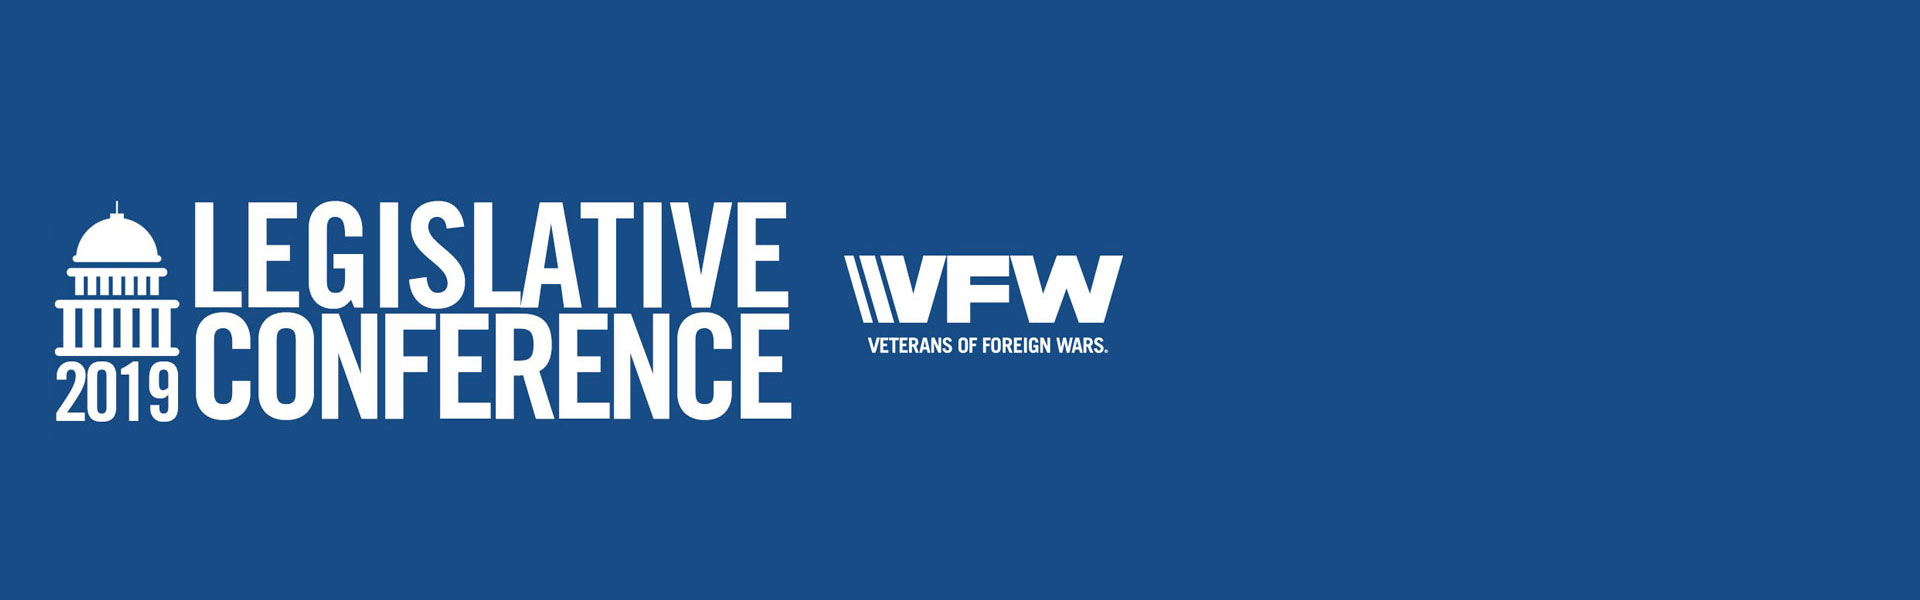 2019 VFW Legislative Conference March 3-6